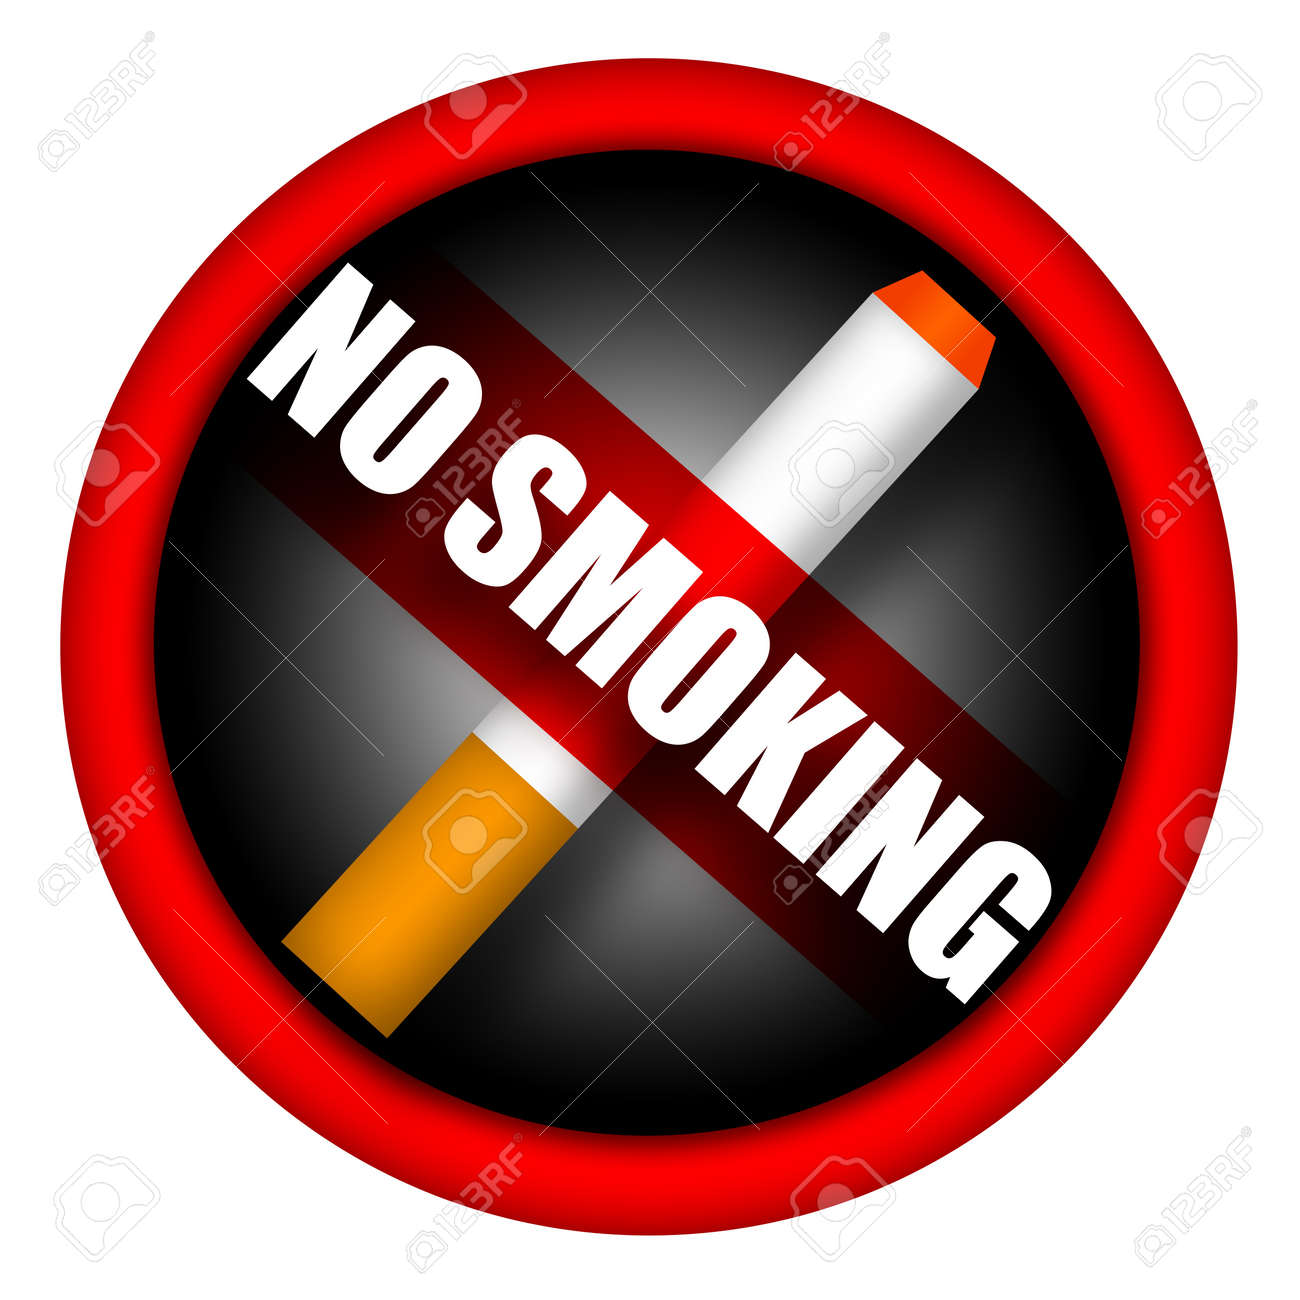 No smoking sign with cigarette and caution inscription isolated over white background Stock Photo - 13638893